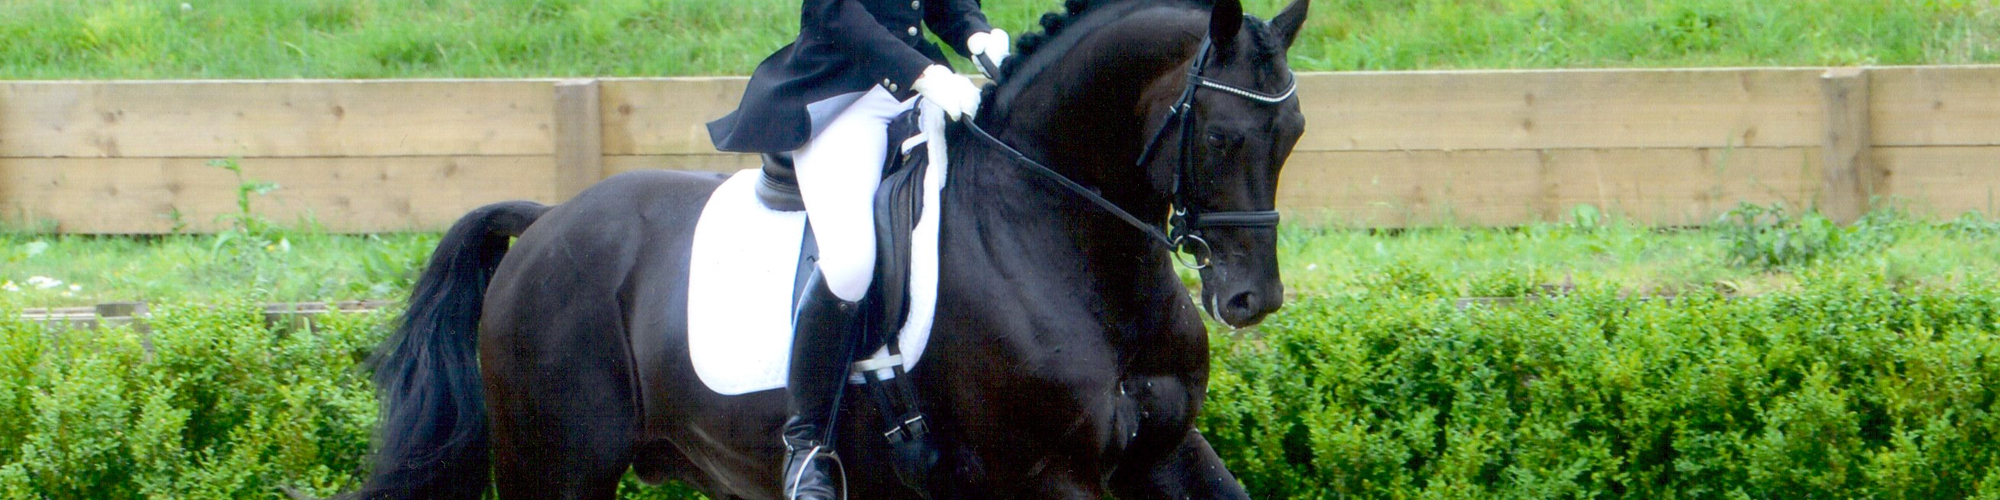 Sparks Equestrian - Horse training and livery in Hampshire